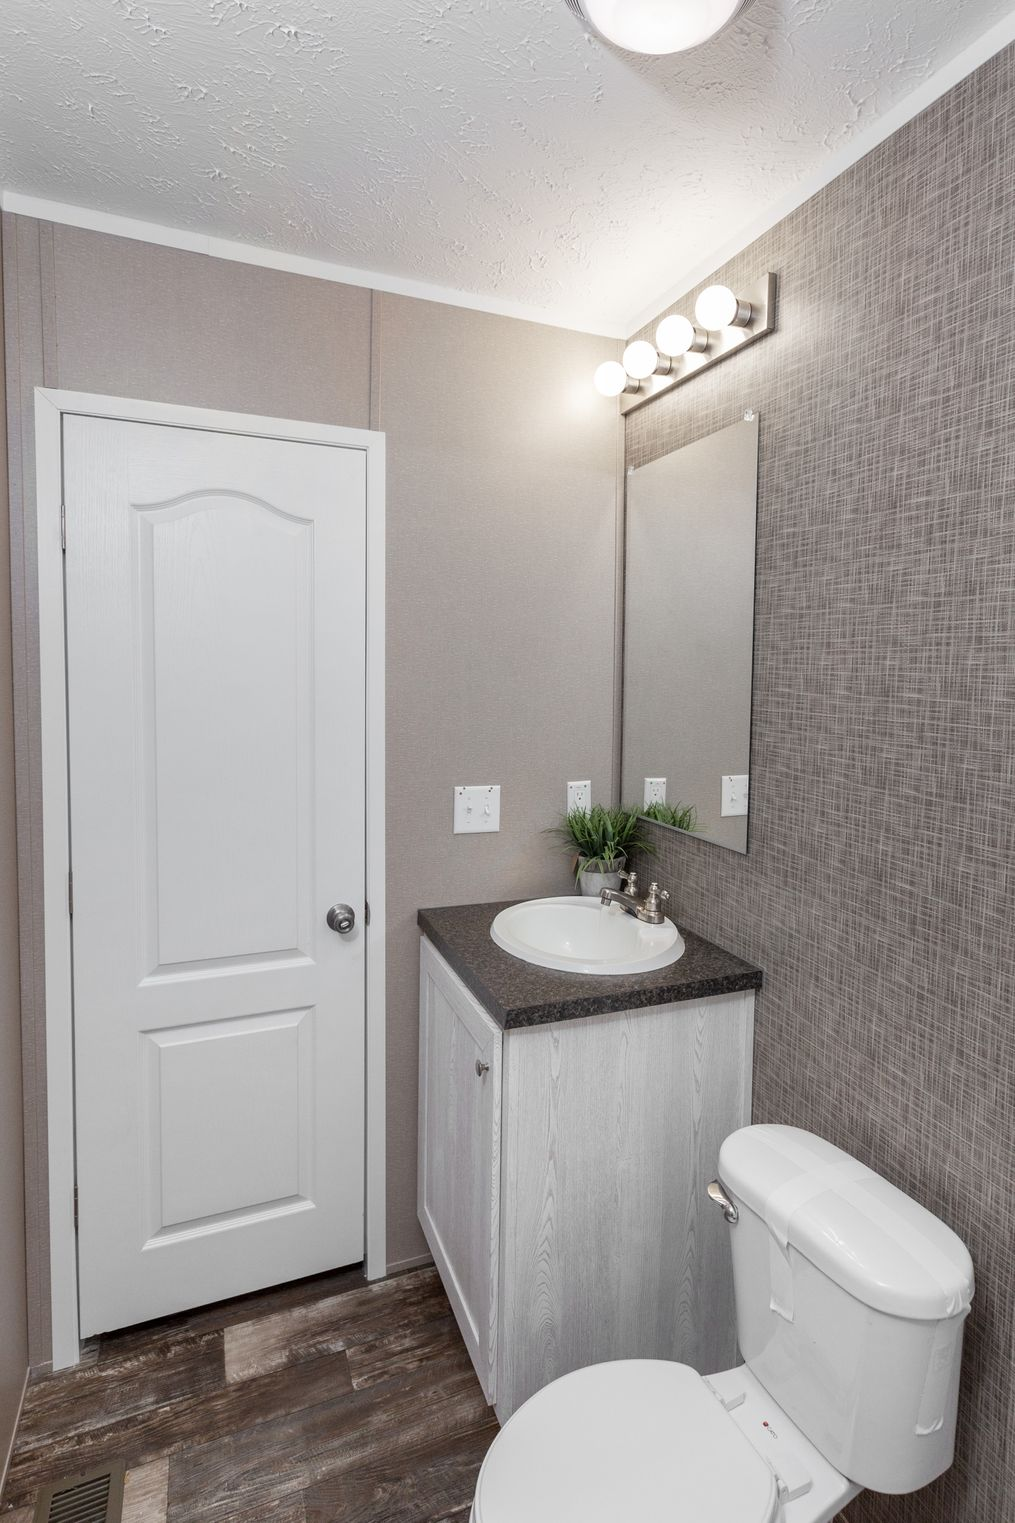 The THE ANNIVERSARY PLUS Master Bathroom. This Manufactured Mobile Home features 3 bedrooms and 2 baths.